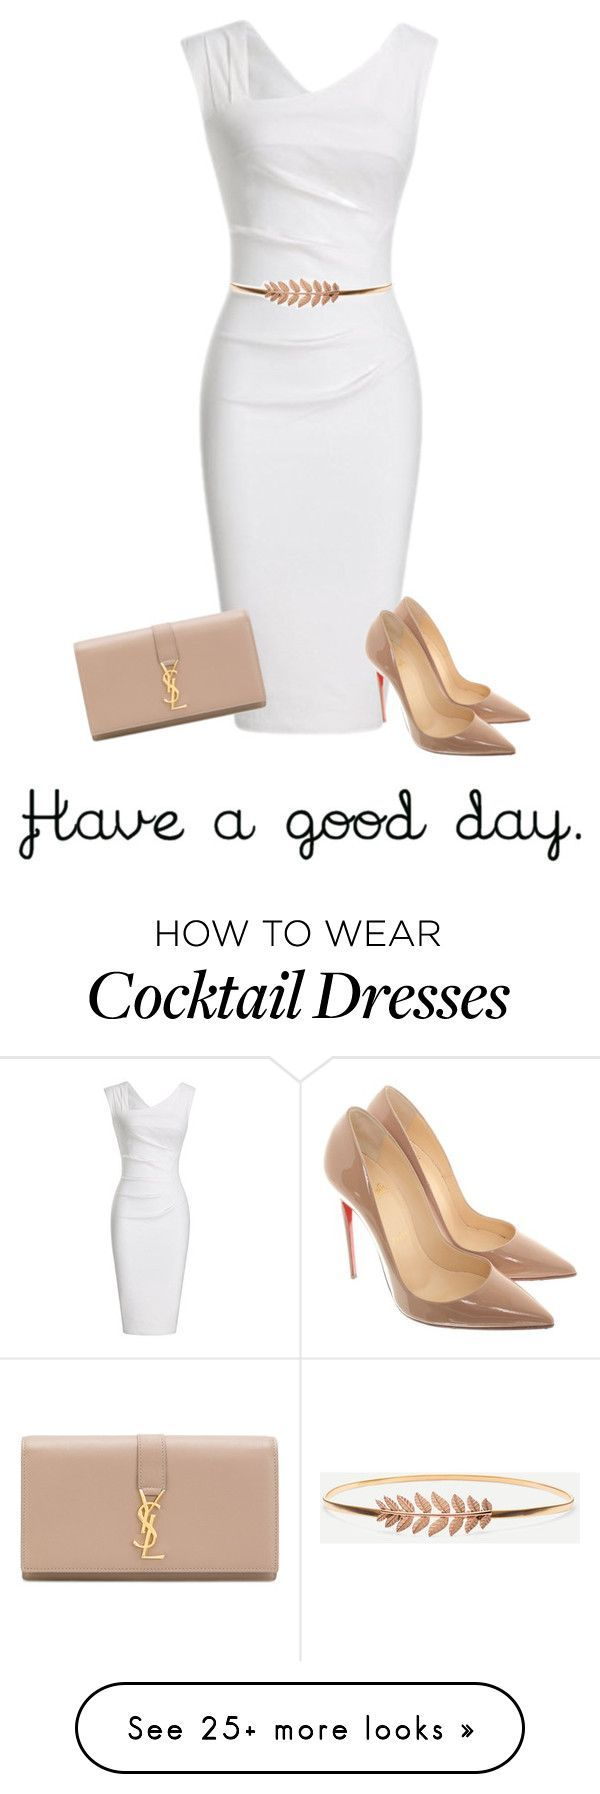 """Beautiful morning "" by g57xv on Polyvore featuring Christian Louboutin and Yves Saint Laurent"